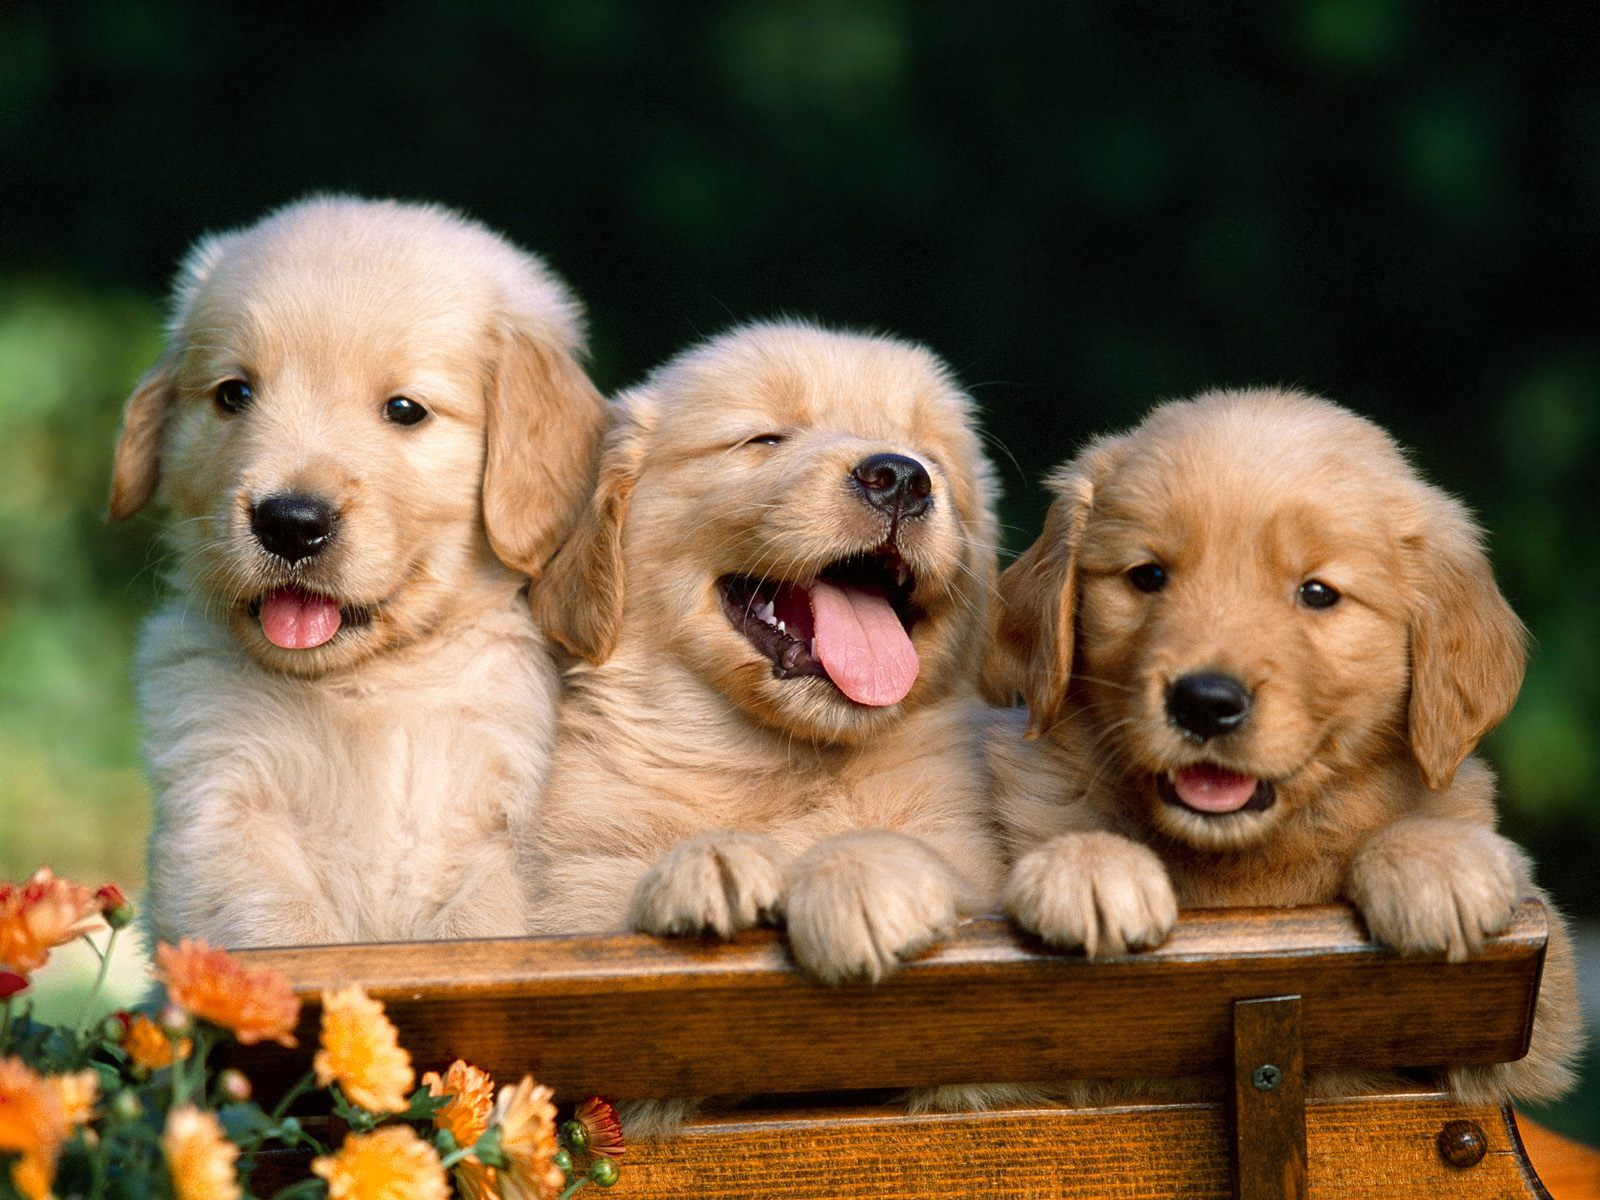 I will take all three of them please! Adorable, cute, & precious:)